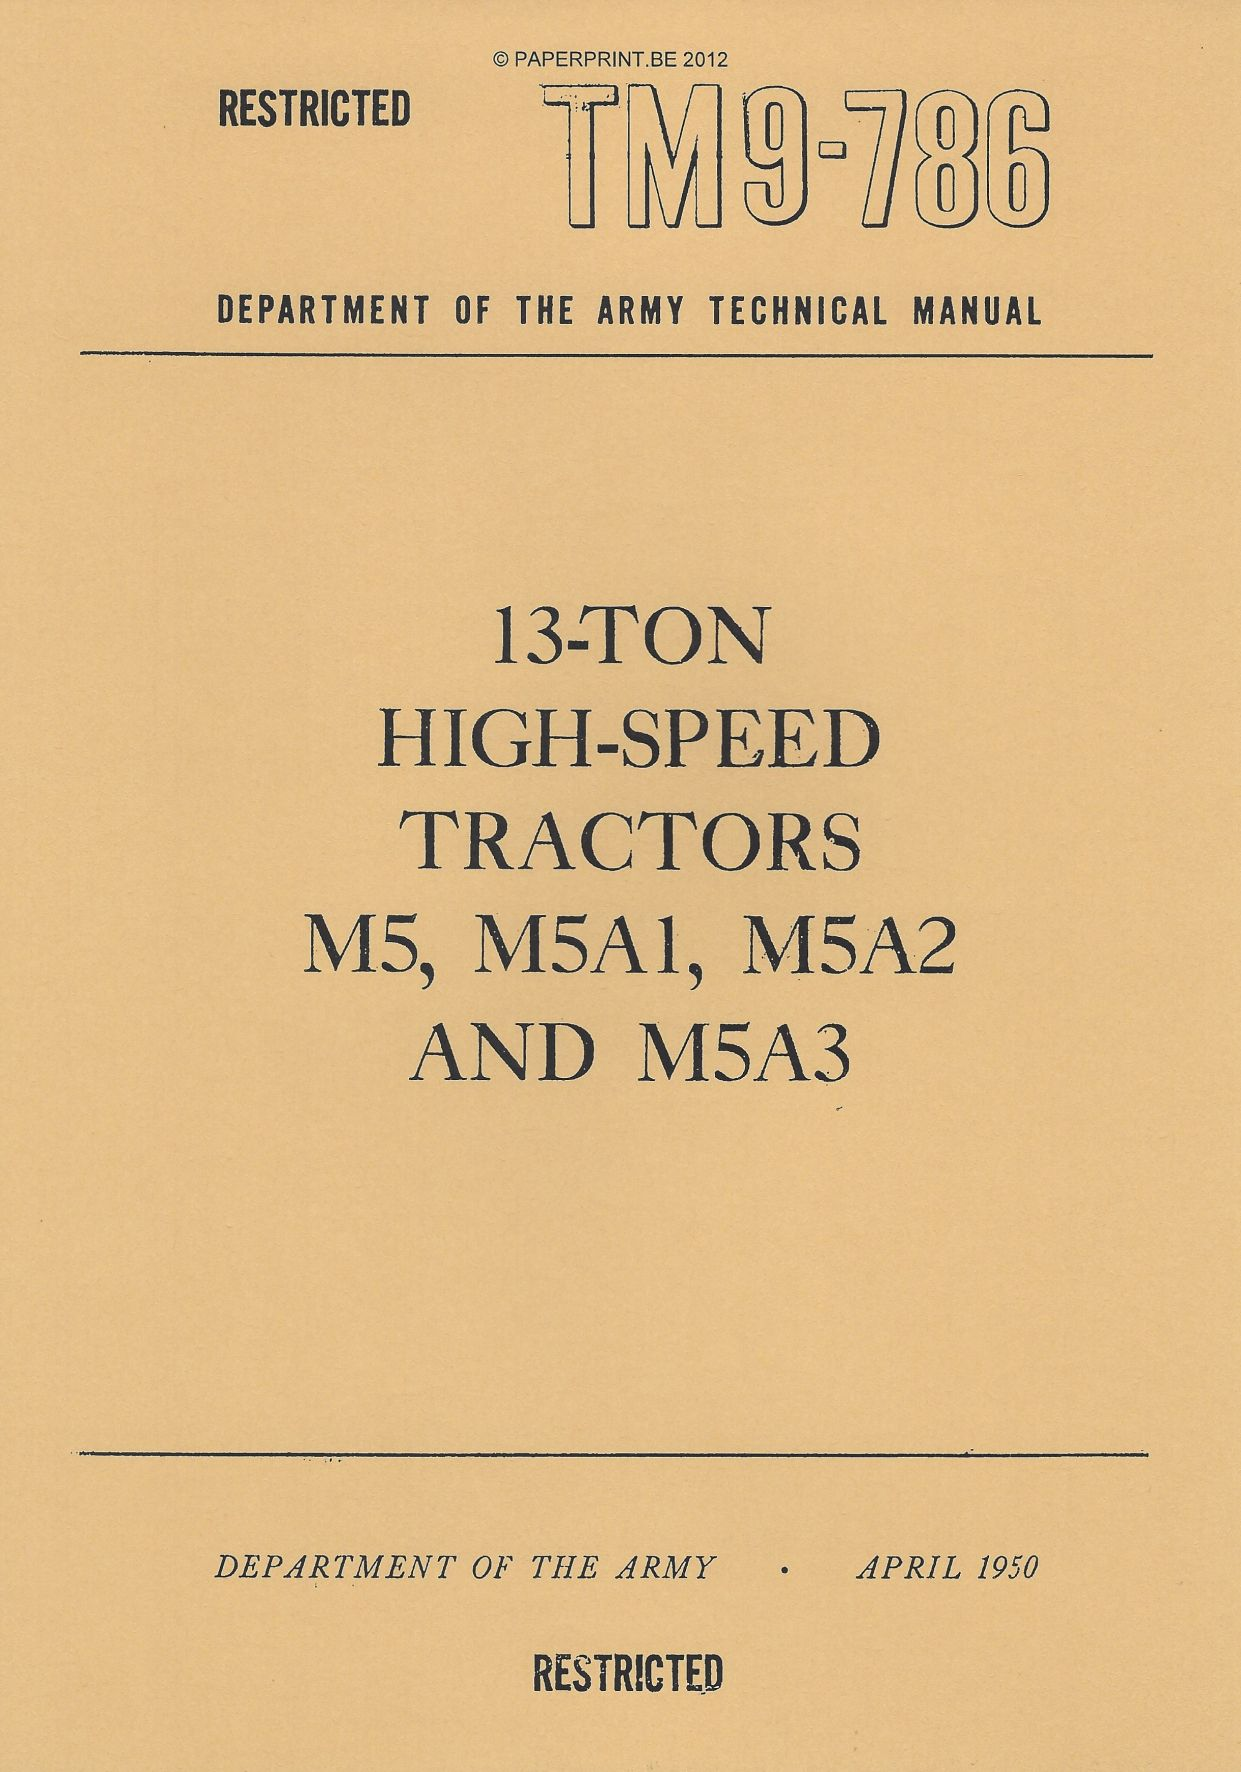 TM 9-786 US 13-TON HIGH-SPEED TRACTORS M5, M5A1, M5A2 AND M5A3